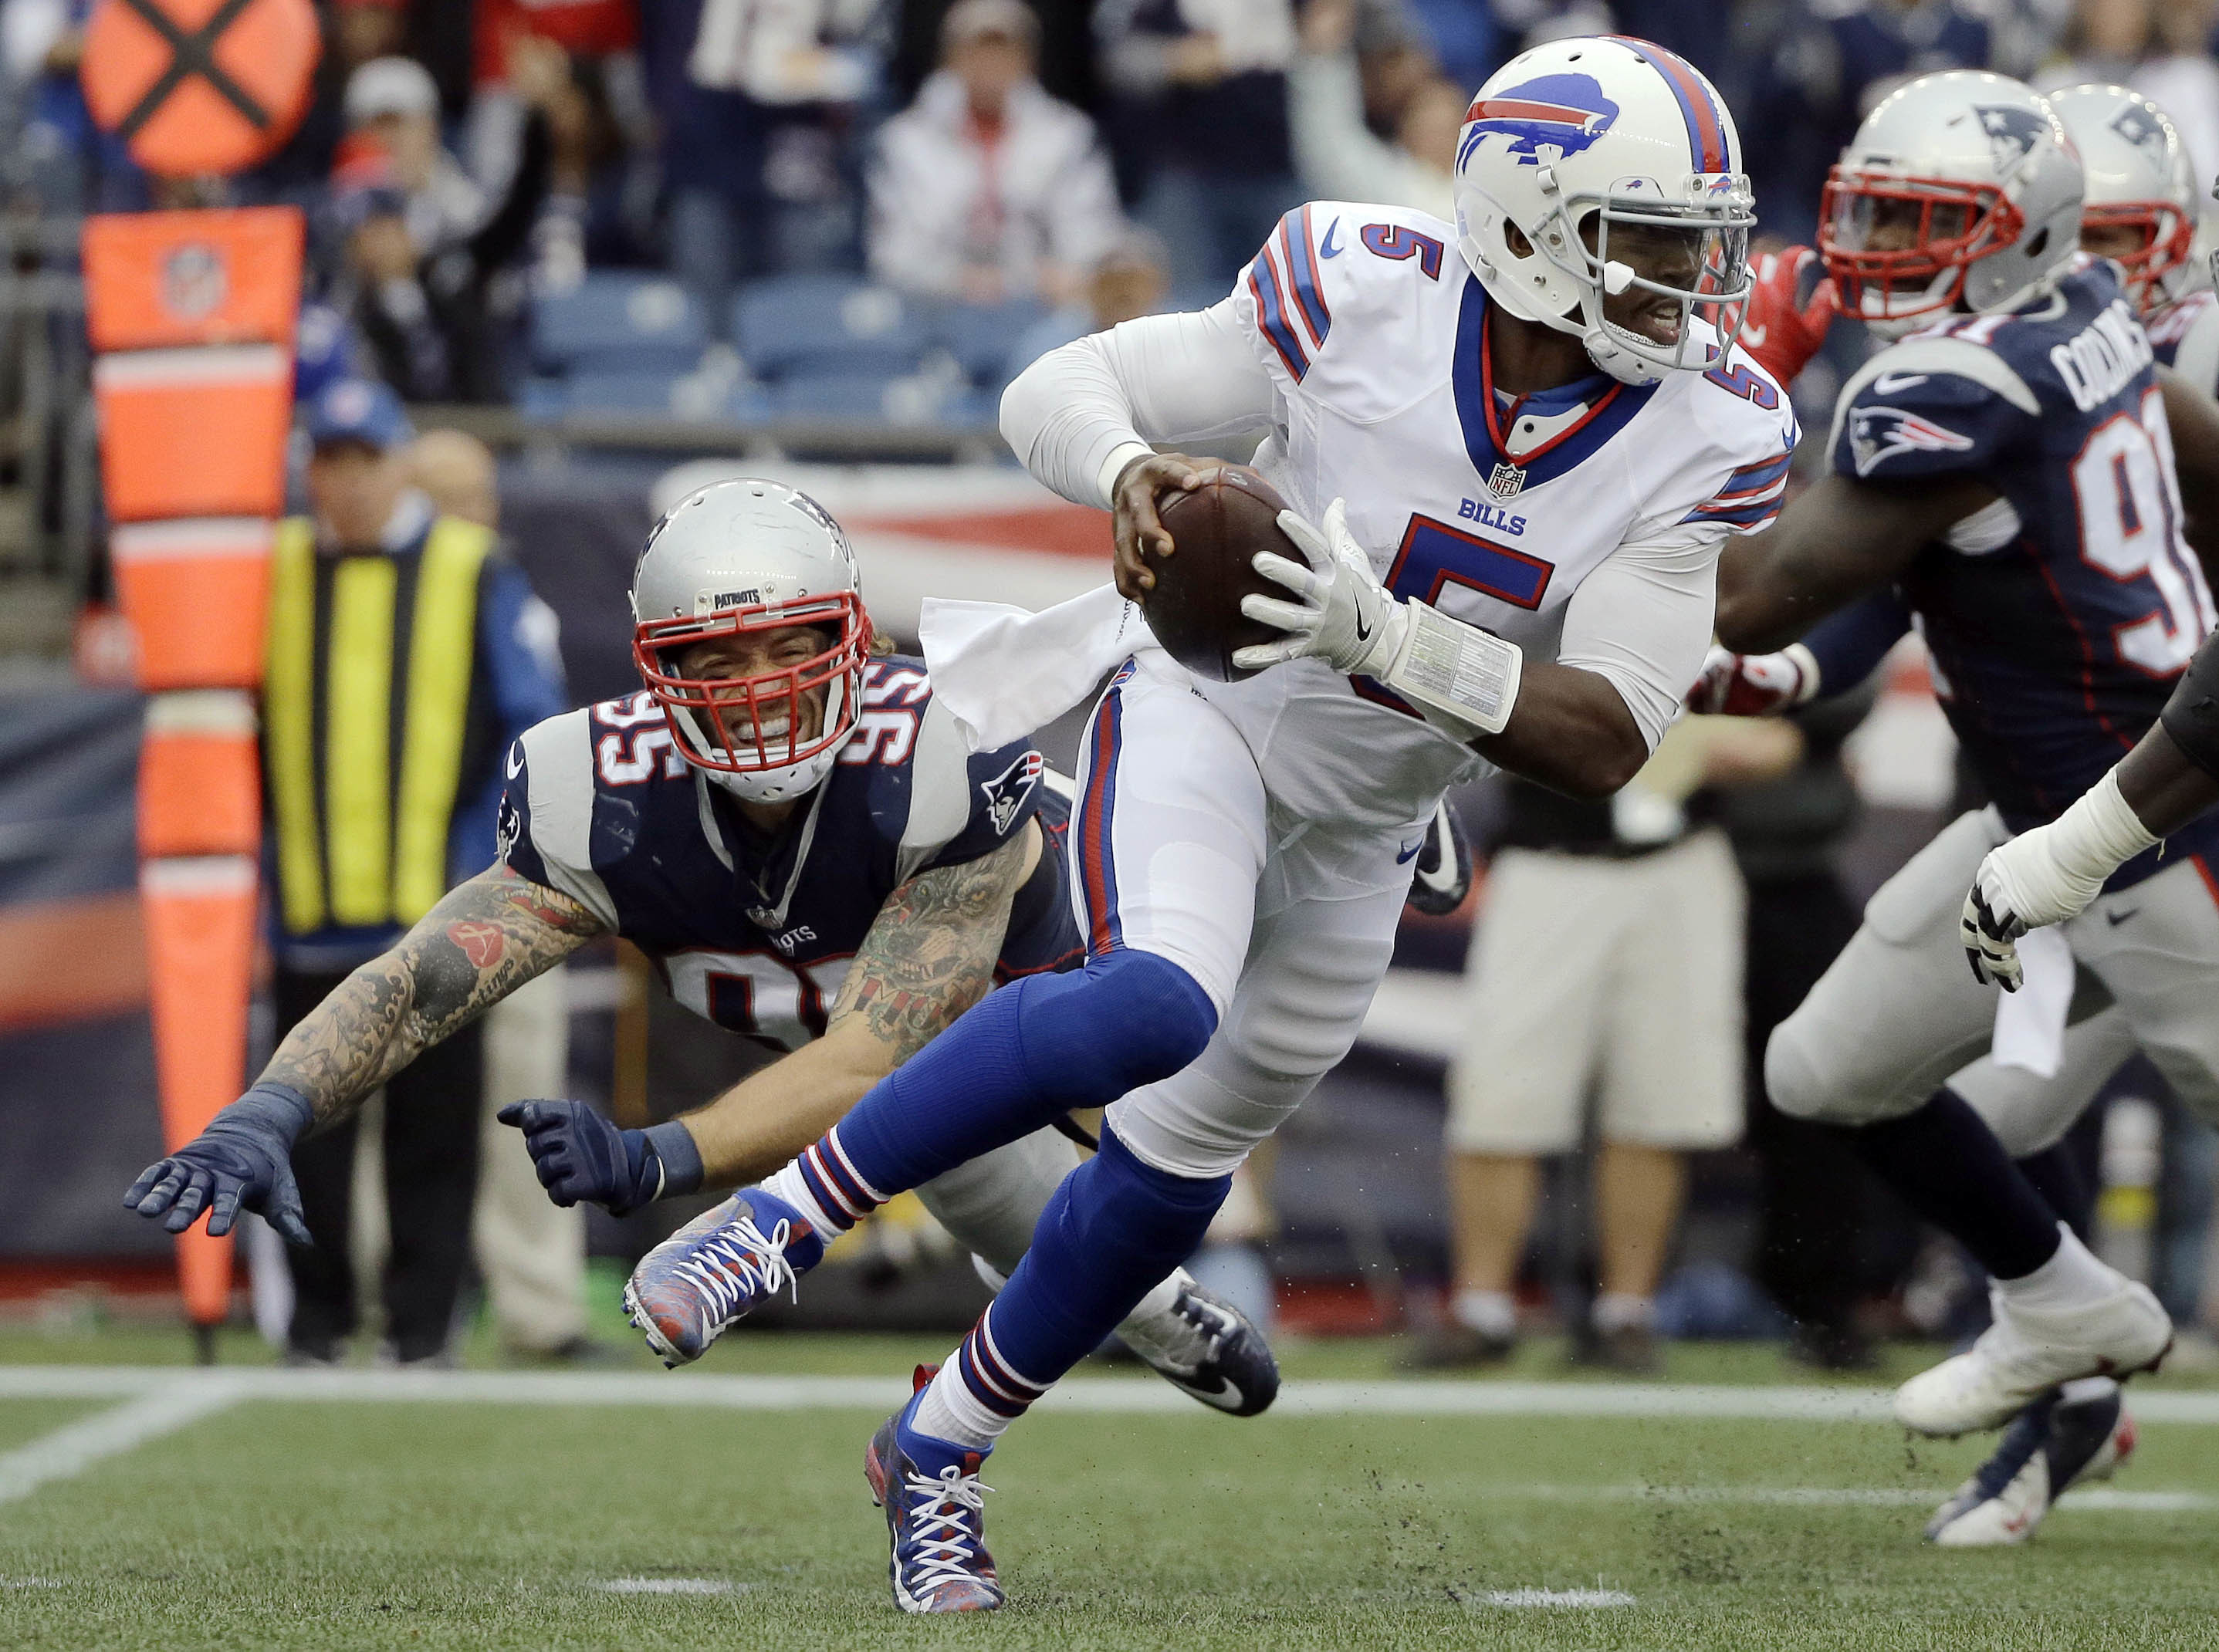 Buffalo Bills quarterback Tyrod Taylor (5) scrambles away from New England Patriots defenders Chris Long, left, and Jamie Collins, right, during the second half of an NFL football game Sunday, Oct. 2, 2016, in Foxborough, Mass. (AP Photo/Elise Amendola)